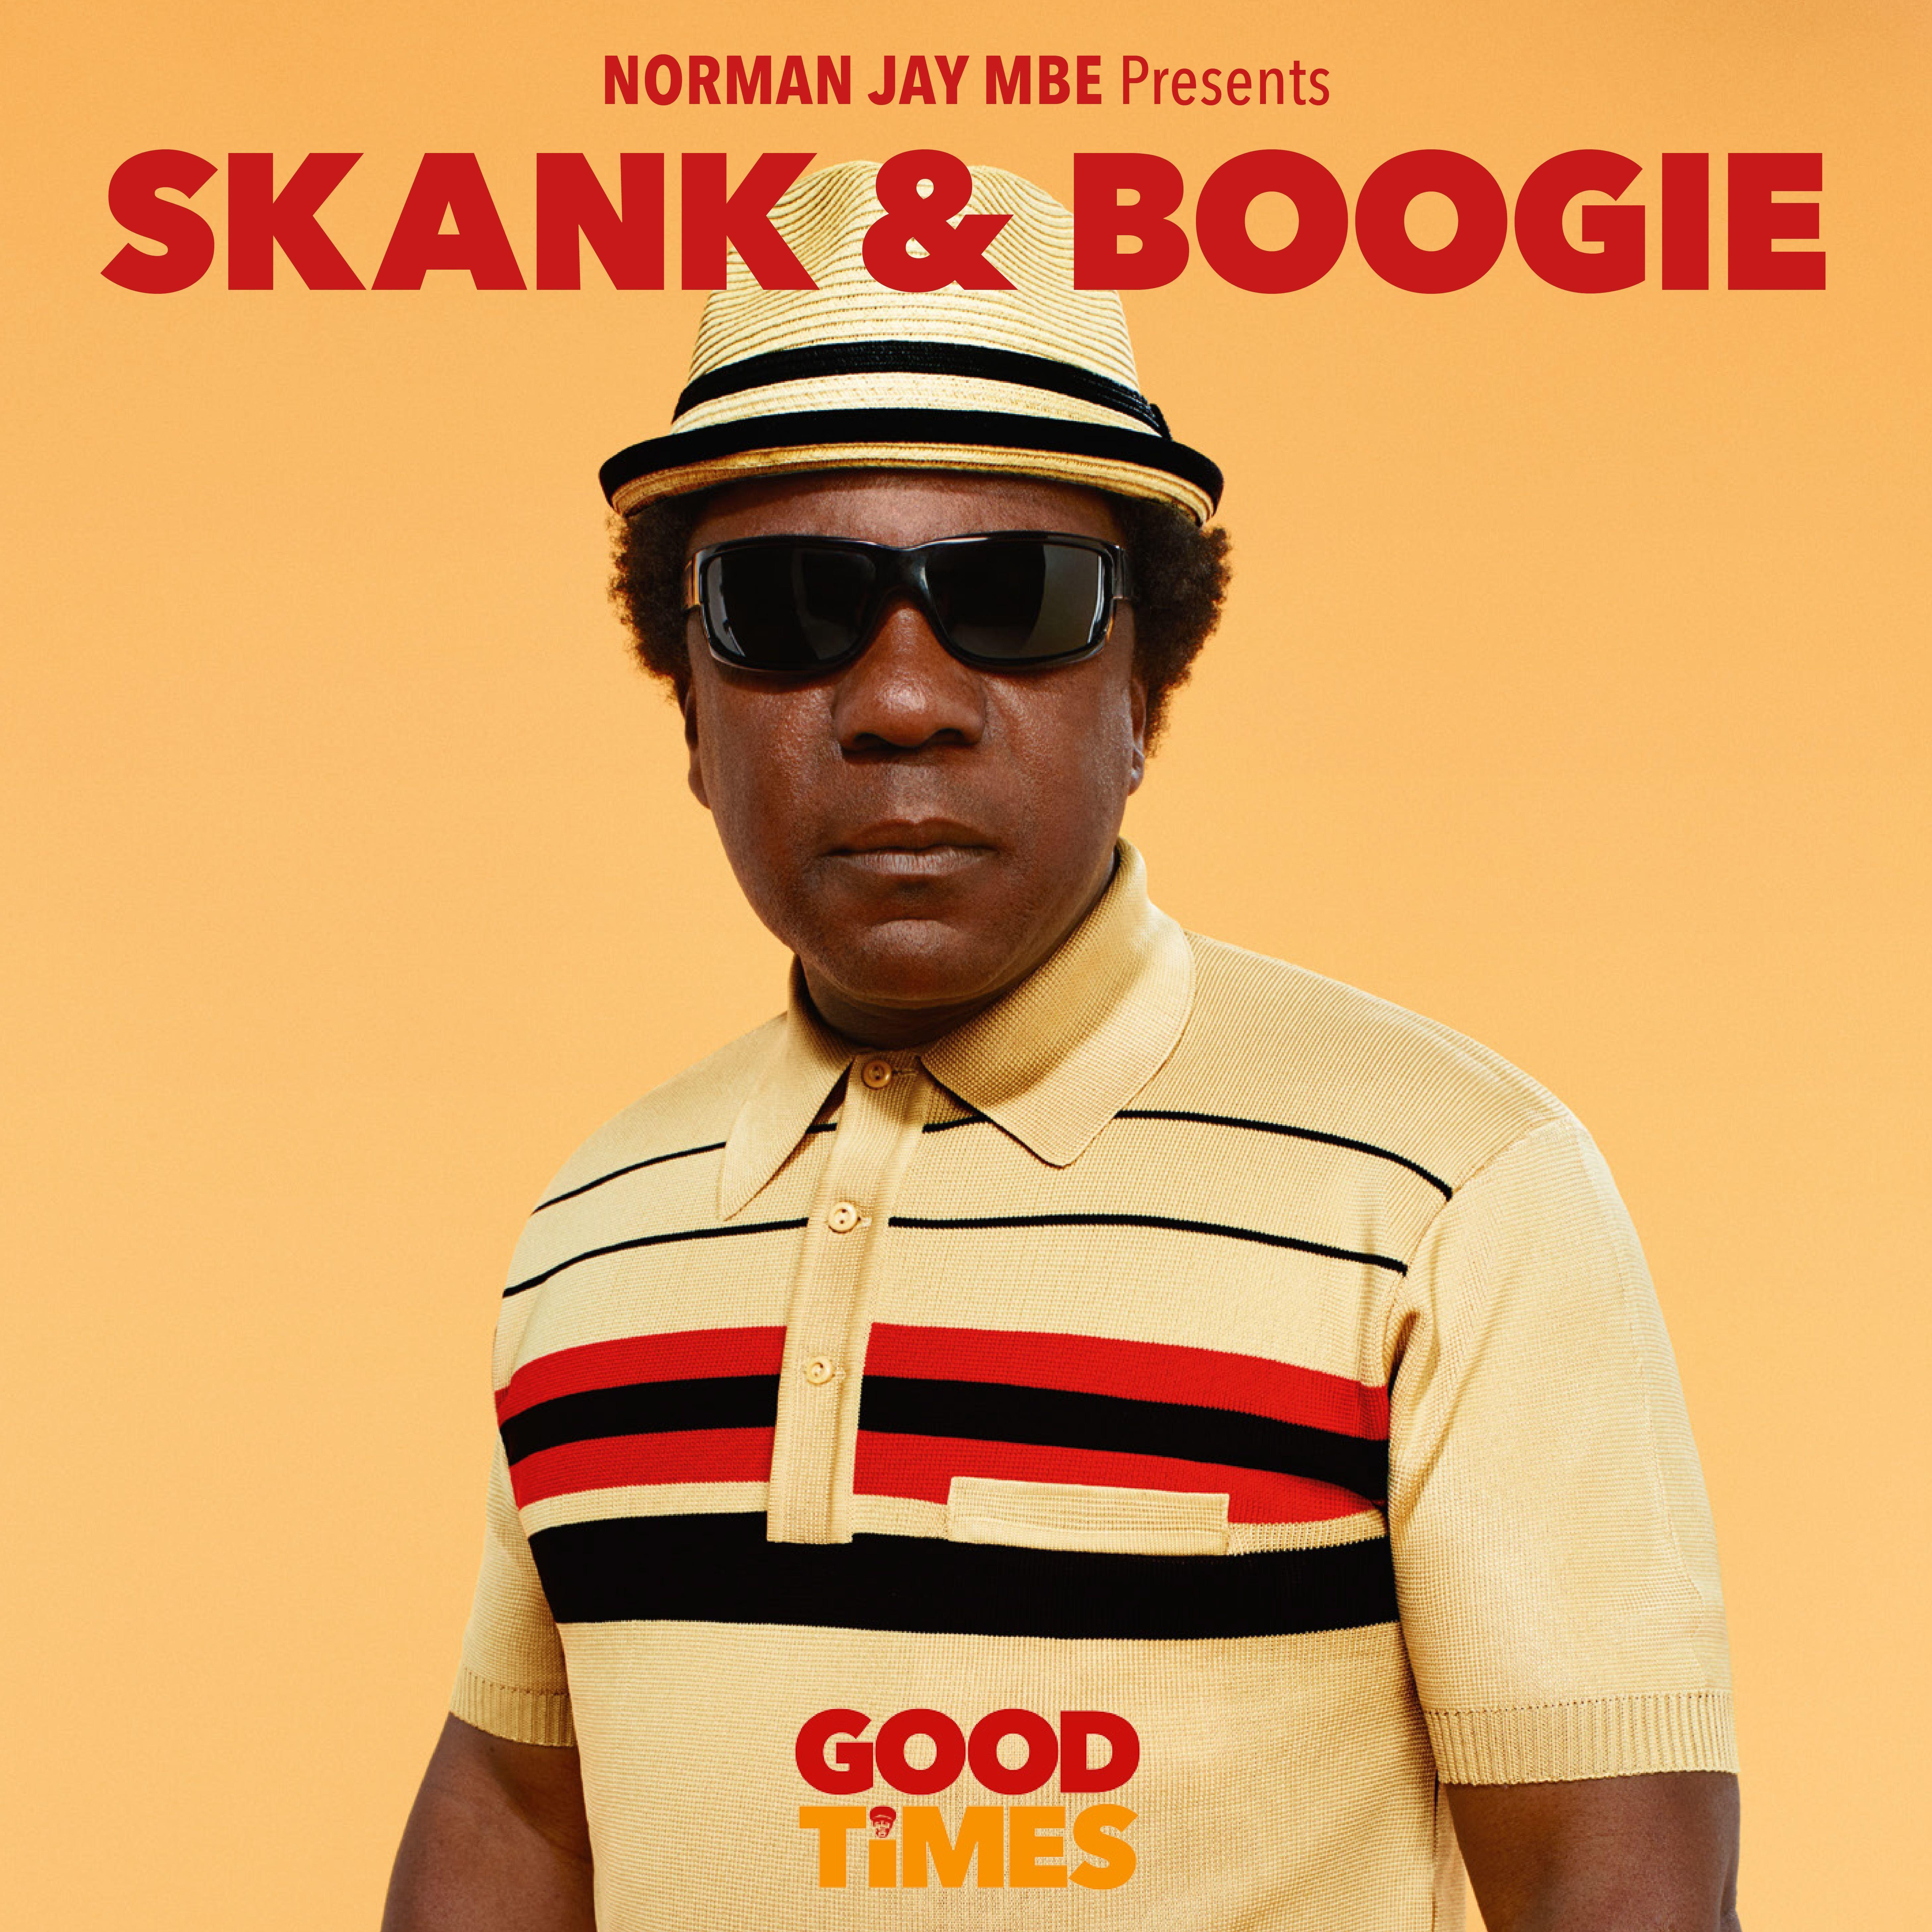 Norman Jay MBE Presents: Good Times - Skank And Boogie